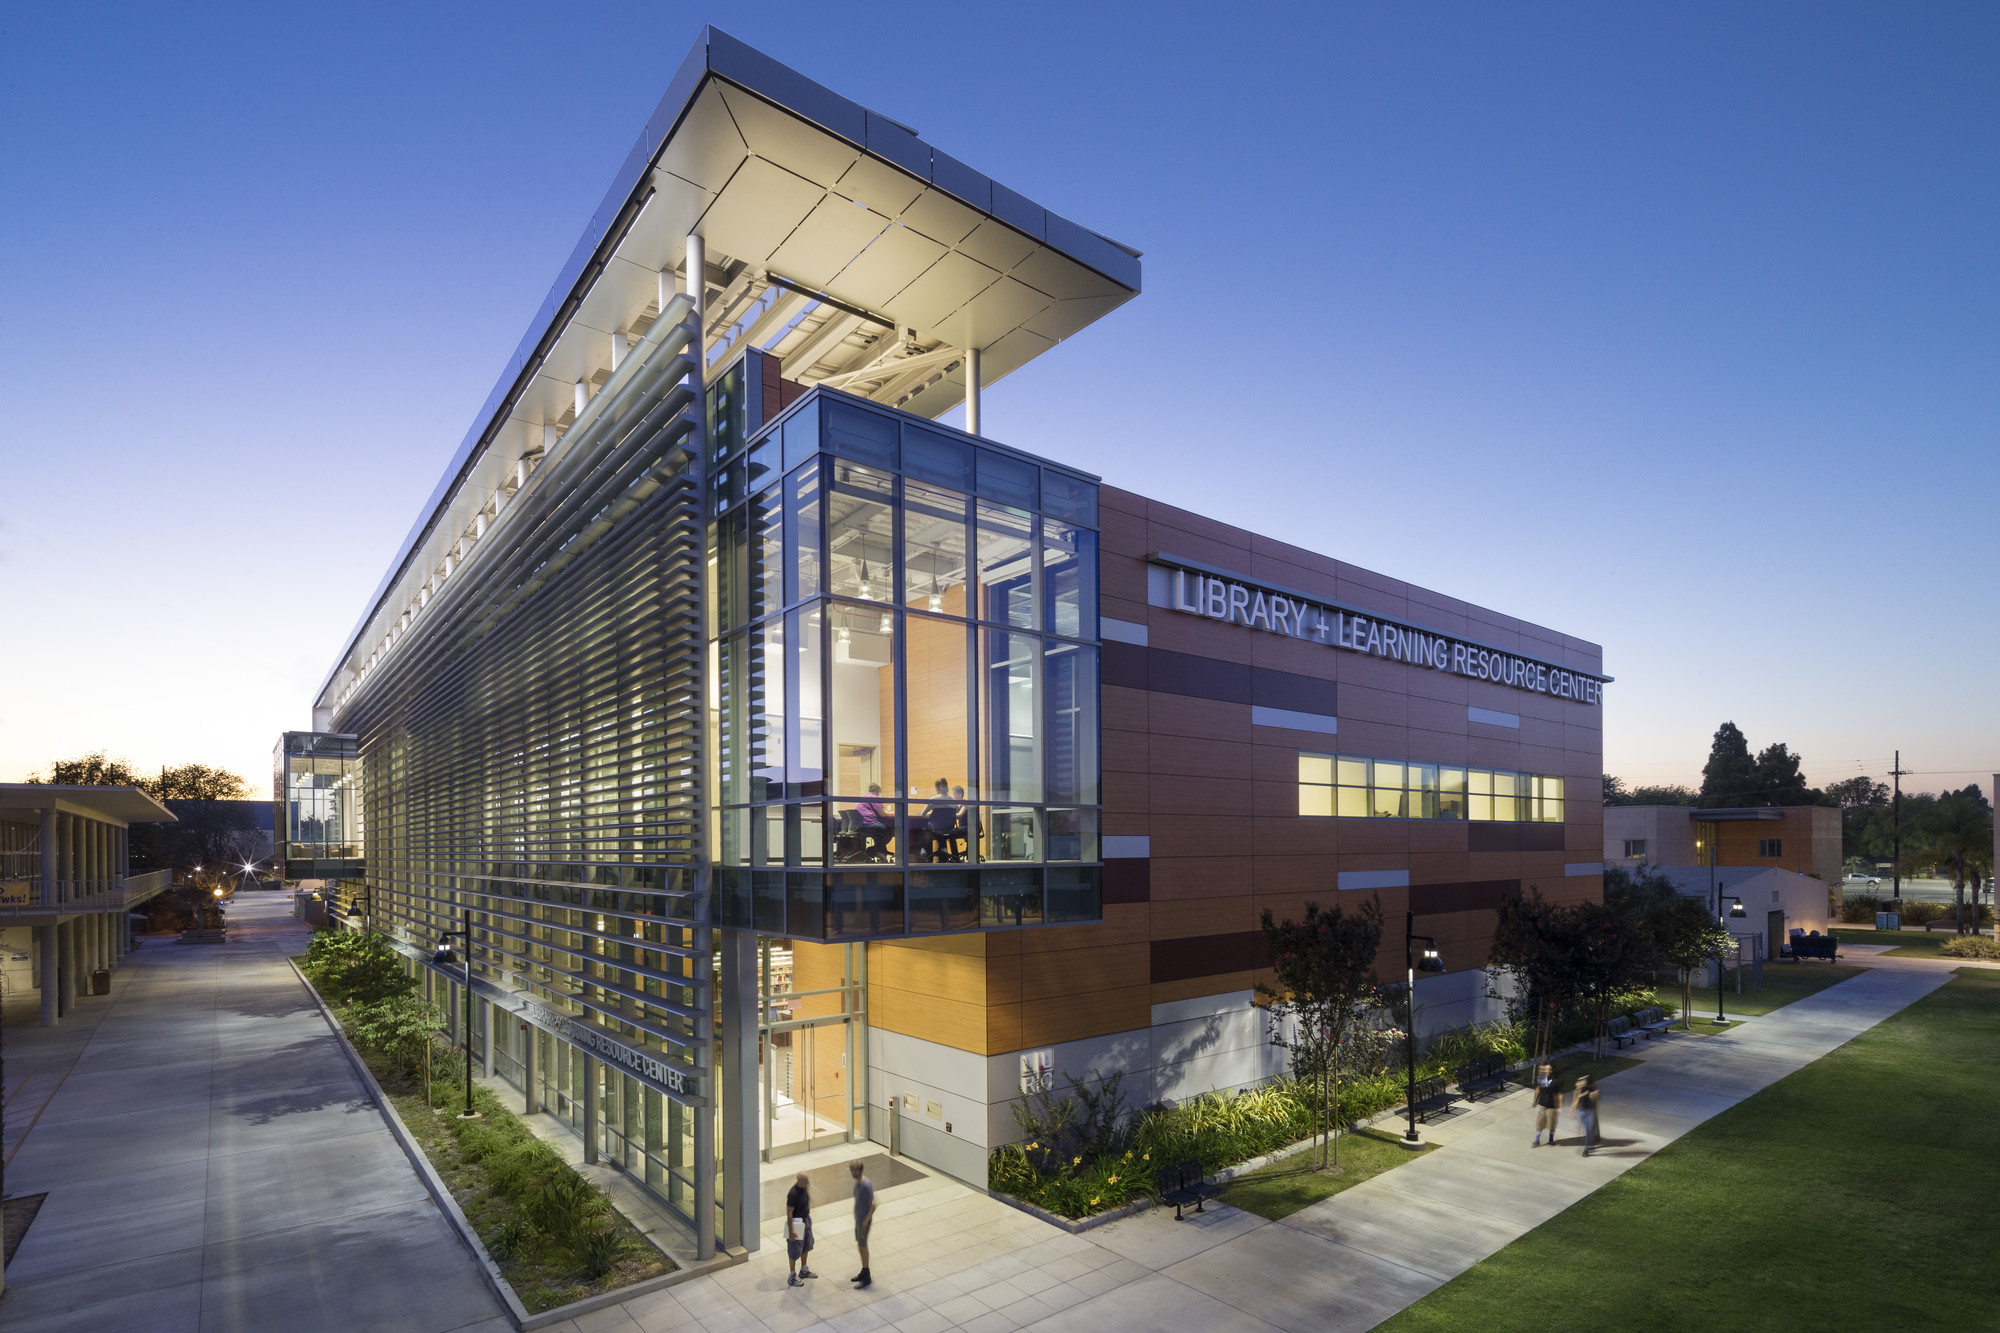 Harbor College Library and Learning Resource Center. Image © Brandon Shigeta